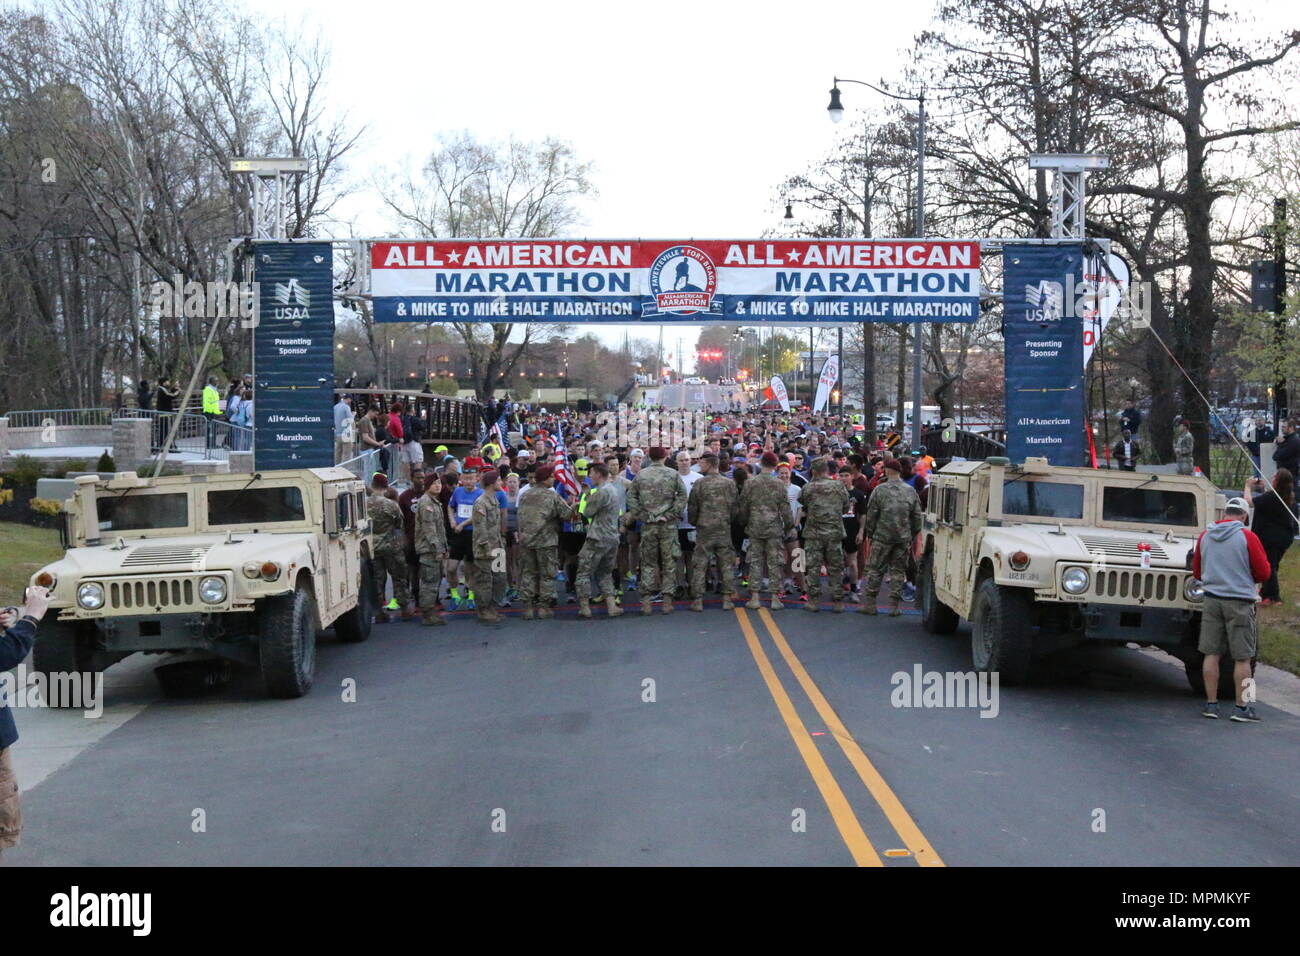 A collection of registrants wait to begin the All American Marathon Mar. 26, 2017 in Fayetteville, N.C. The marathon started at Fayetteville's Festival Park and allowed the event goers an opportunity to run through the center of the historic portion of the city, passing the Airborne and Special Operations Museum. (U.S. Army photo by Pfc. Hubert D. Delany III/22nd Mobile Public Affairs Detachment) Stock Photo